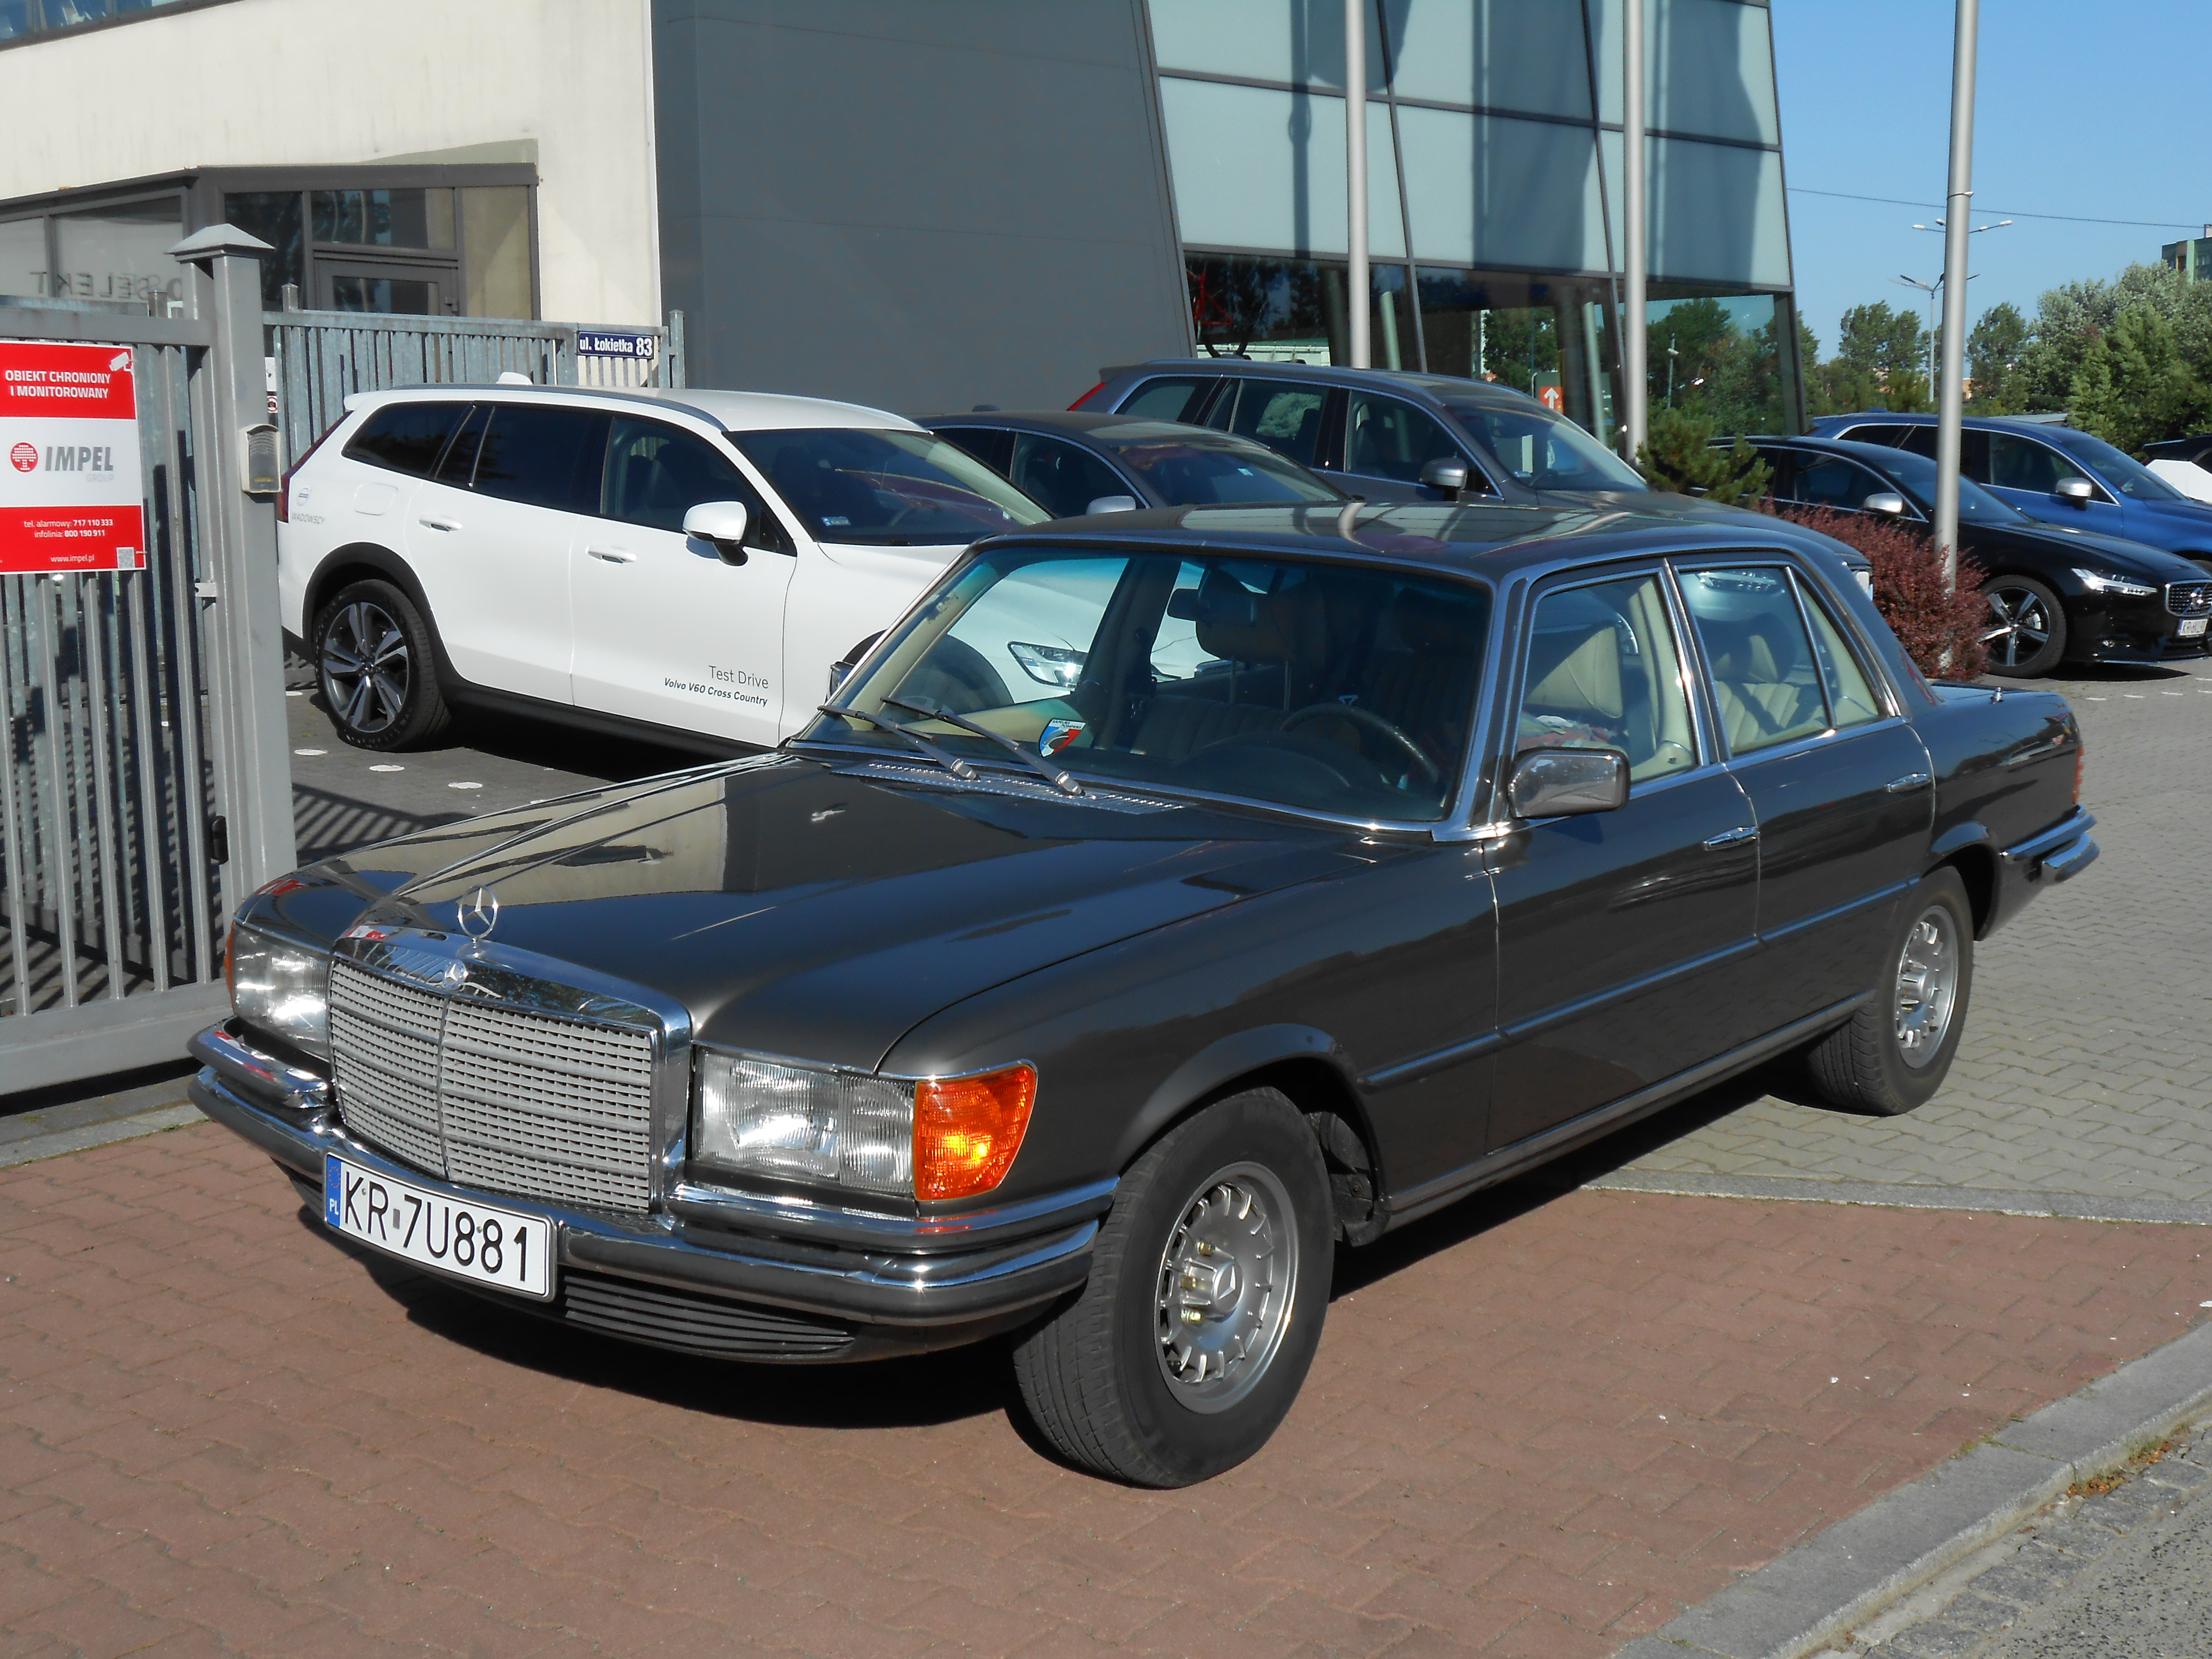 Mercedes-Benz W116 - Wikipedia